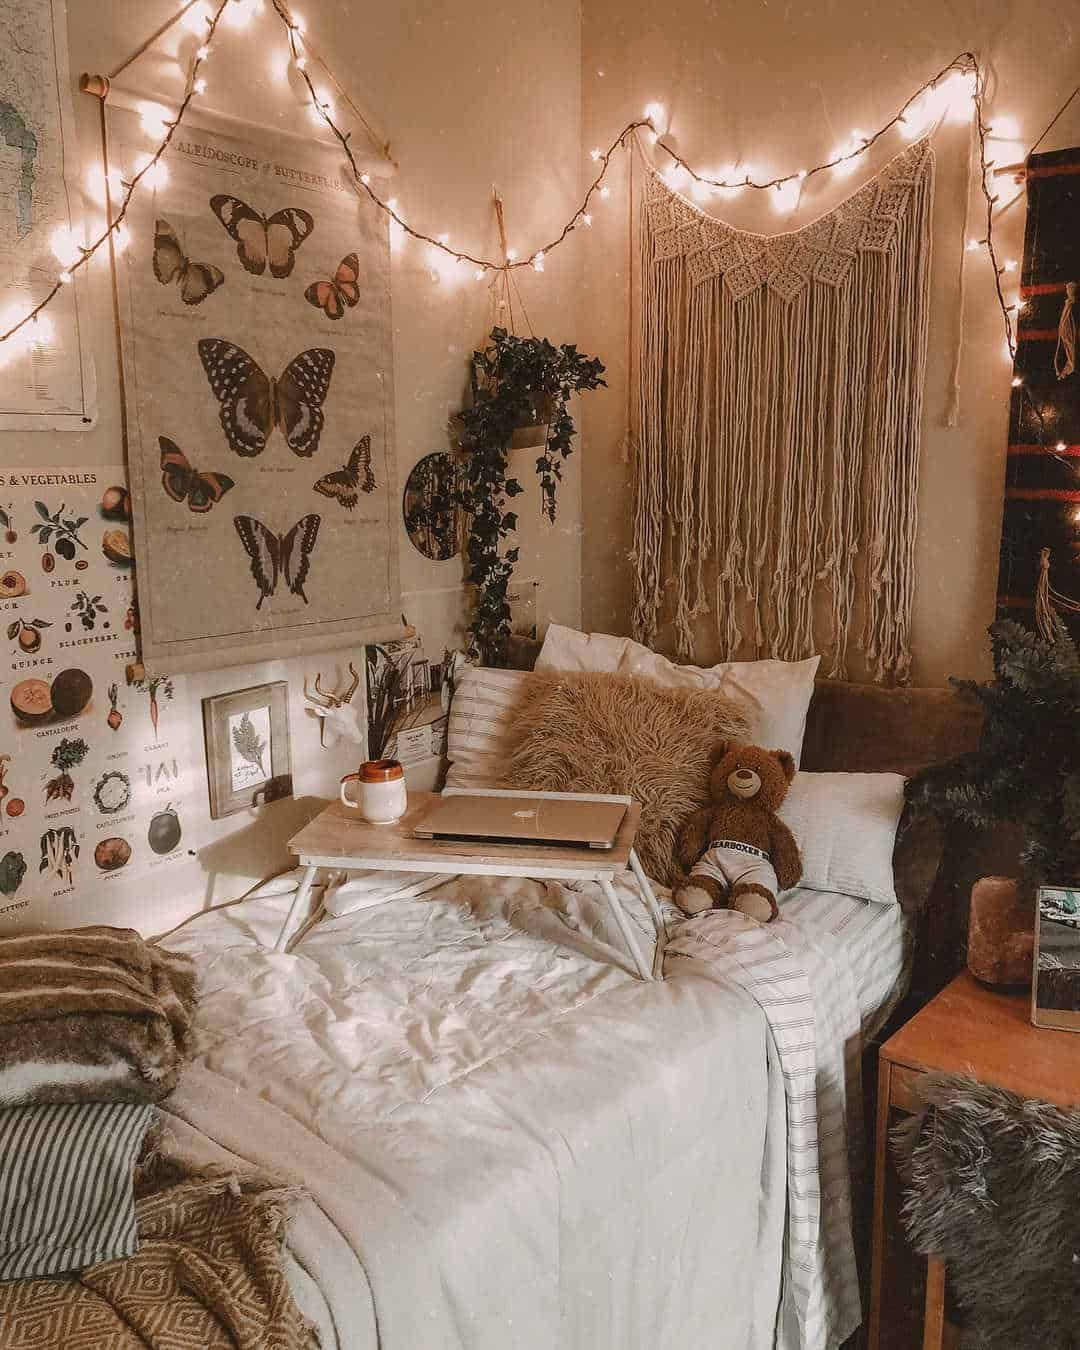 14 Dorm Room Ideas That Are Melting Our Minds RN #girldorms